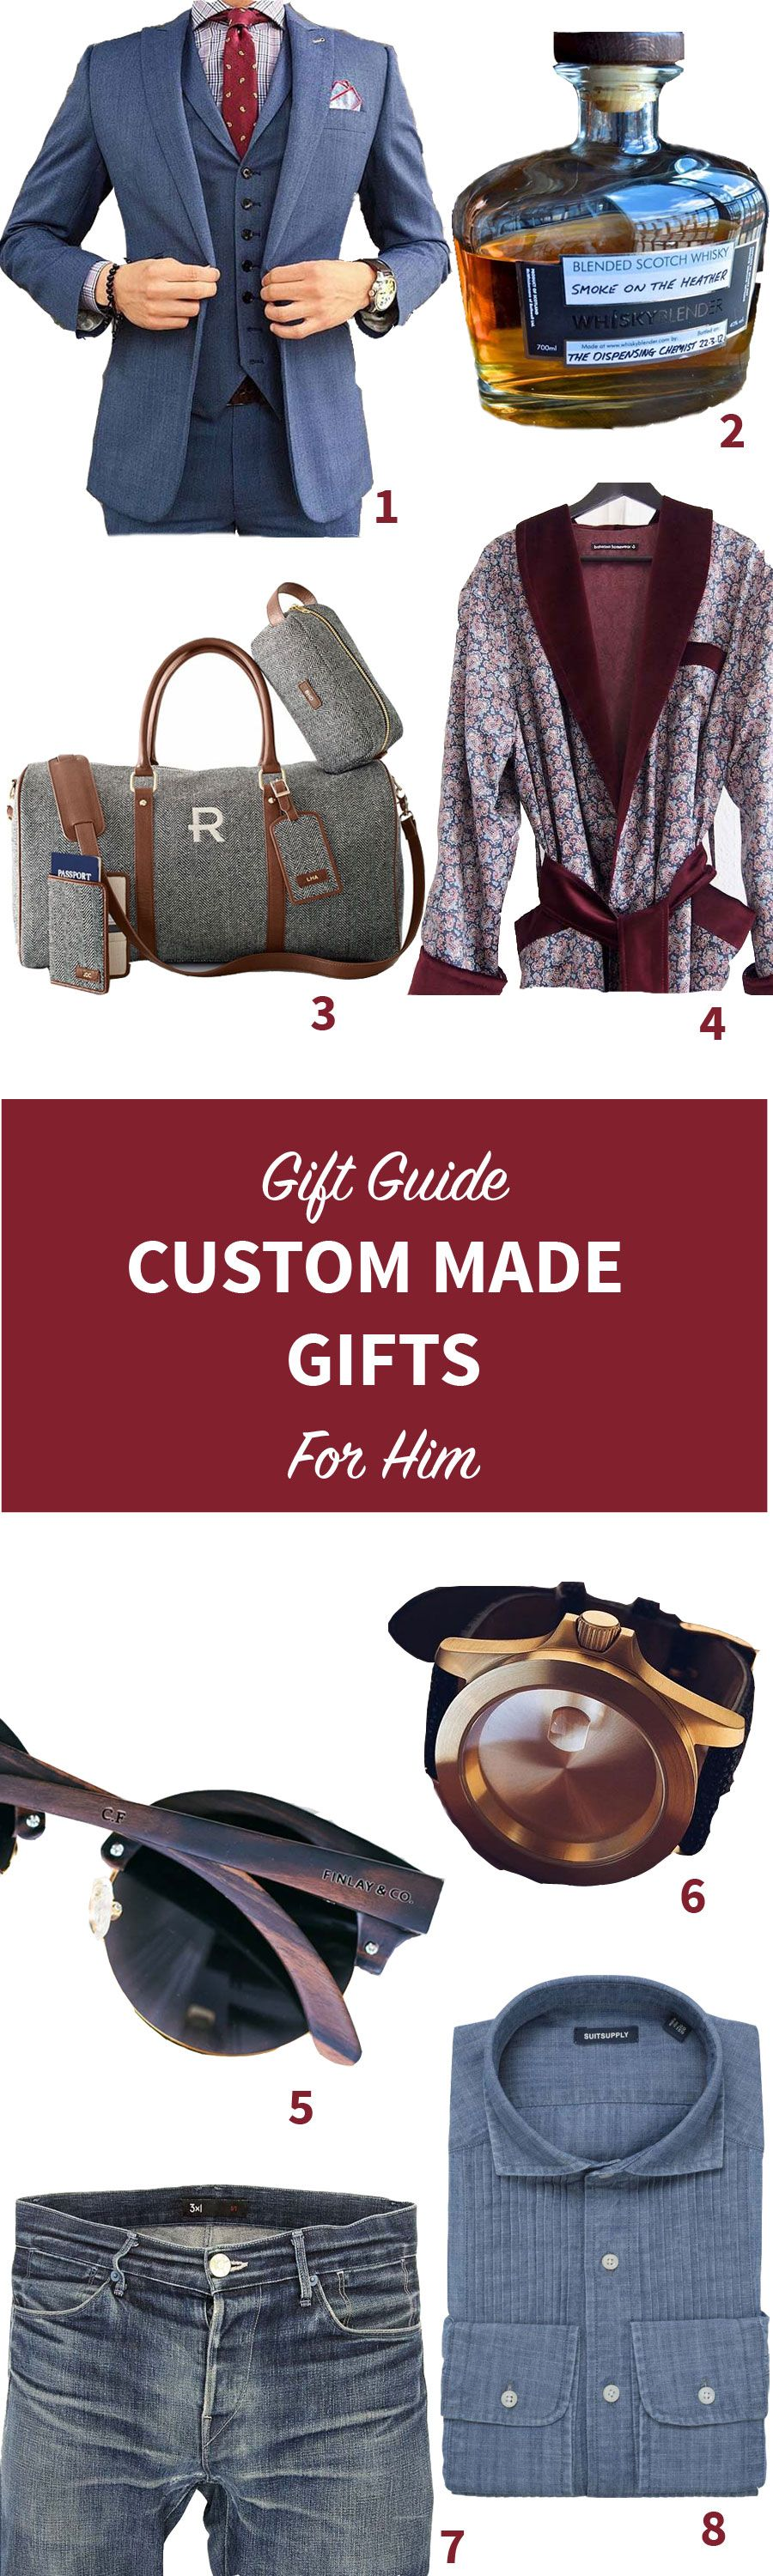 Unique Custom Made Gifts for Him